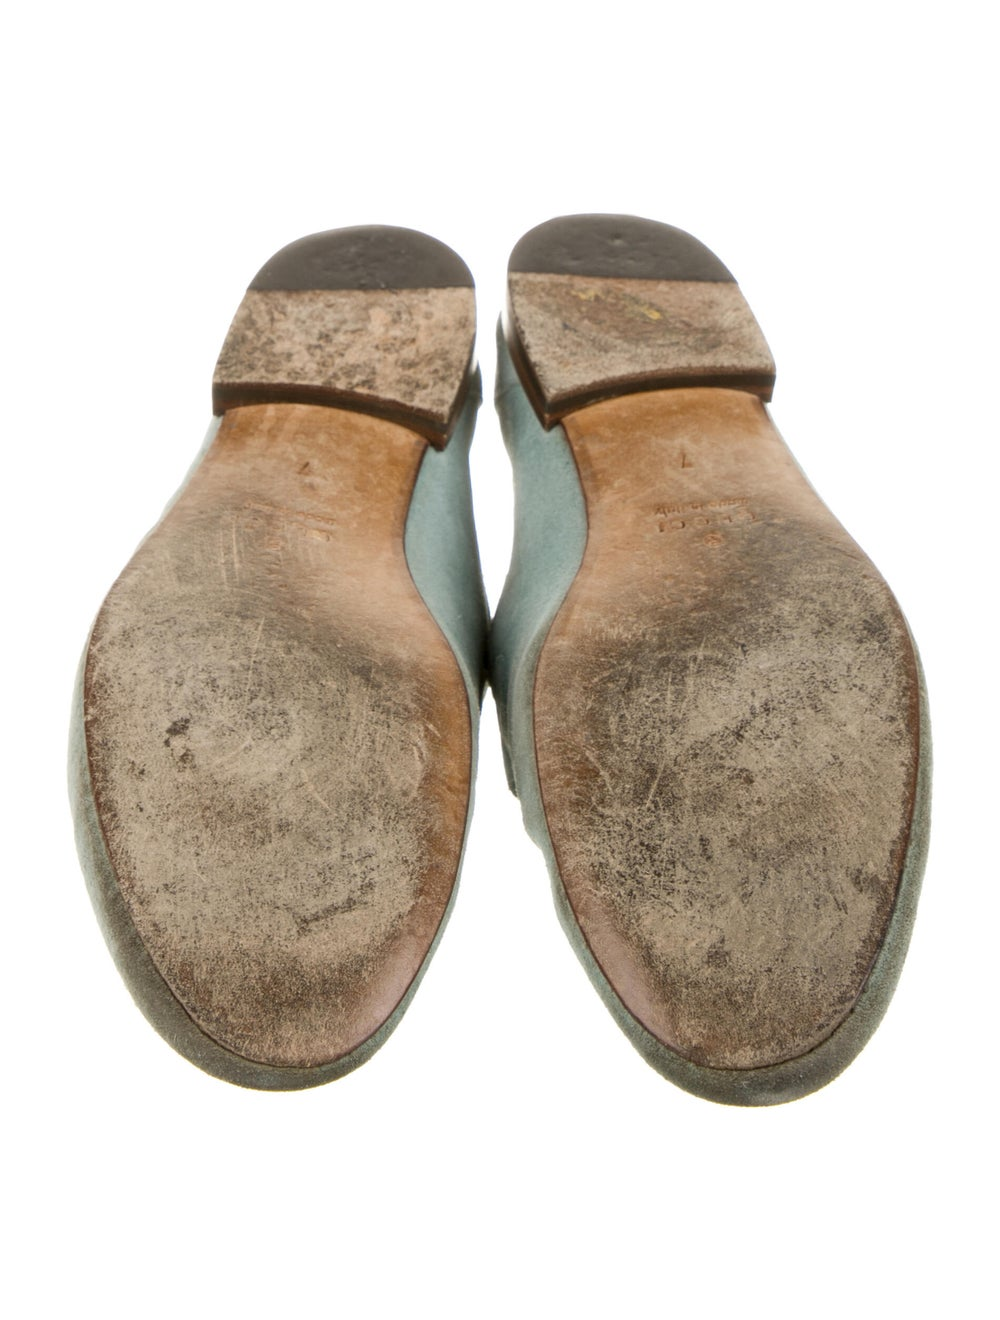 Gucci Horsebit Accent Suede Loafers Green - image 5